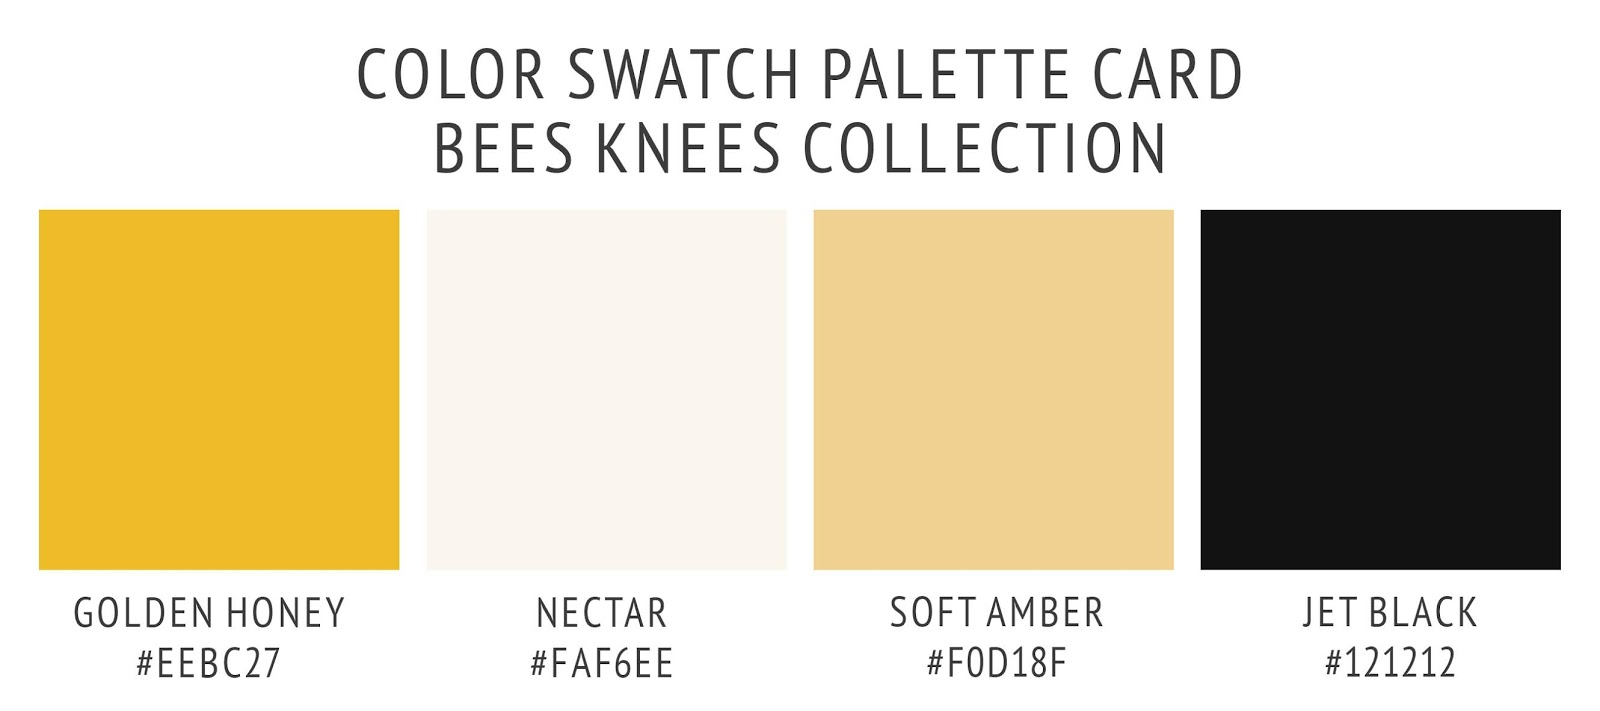 Color palette swatch card for the bees knees collection. In golden honey yellow, soft amber, nectar, and jet black. A warm summer color scheme.